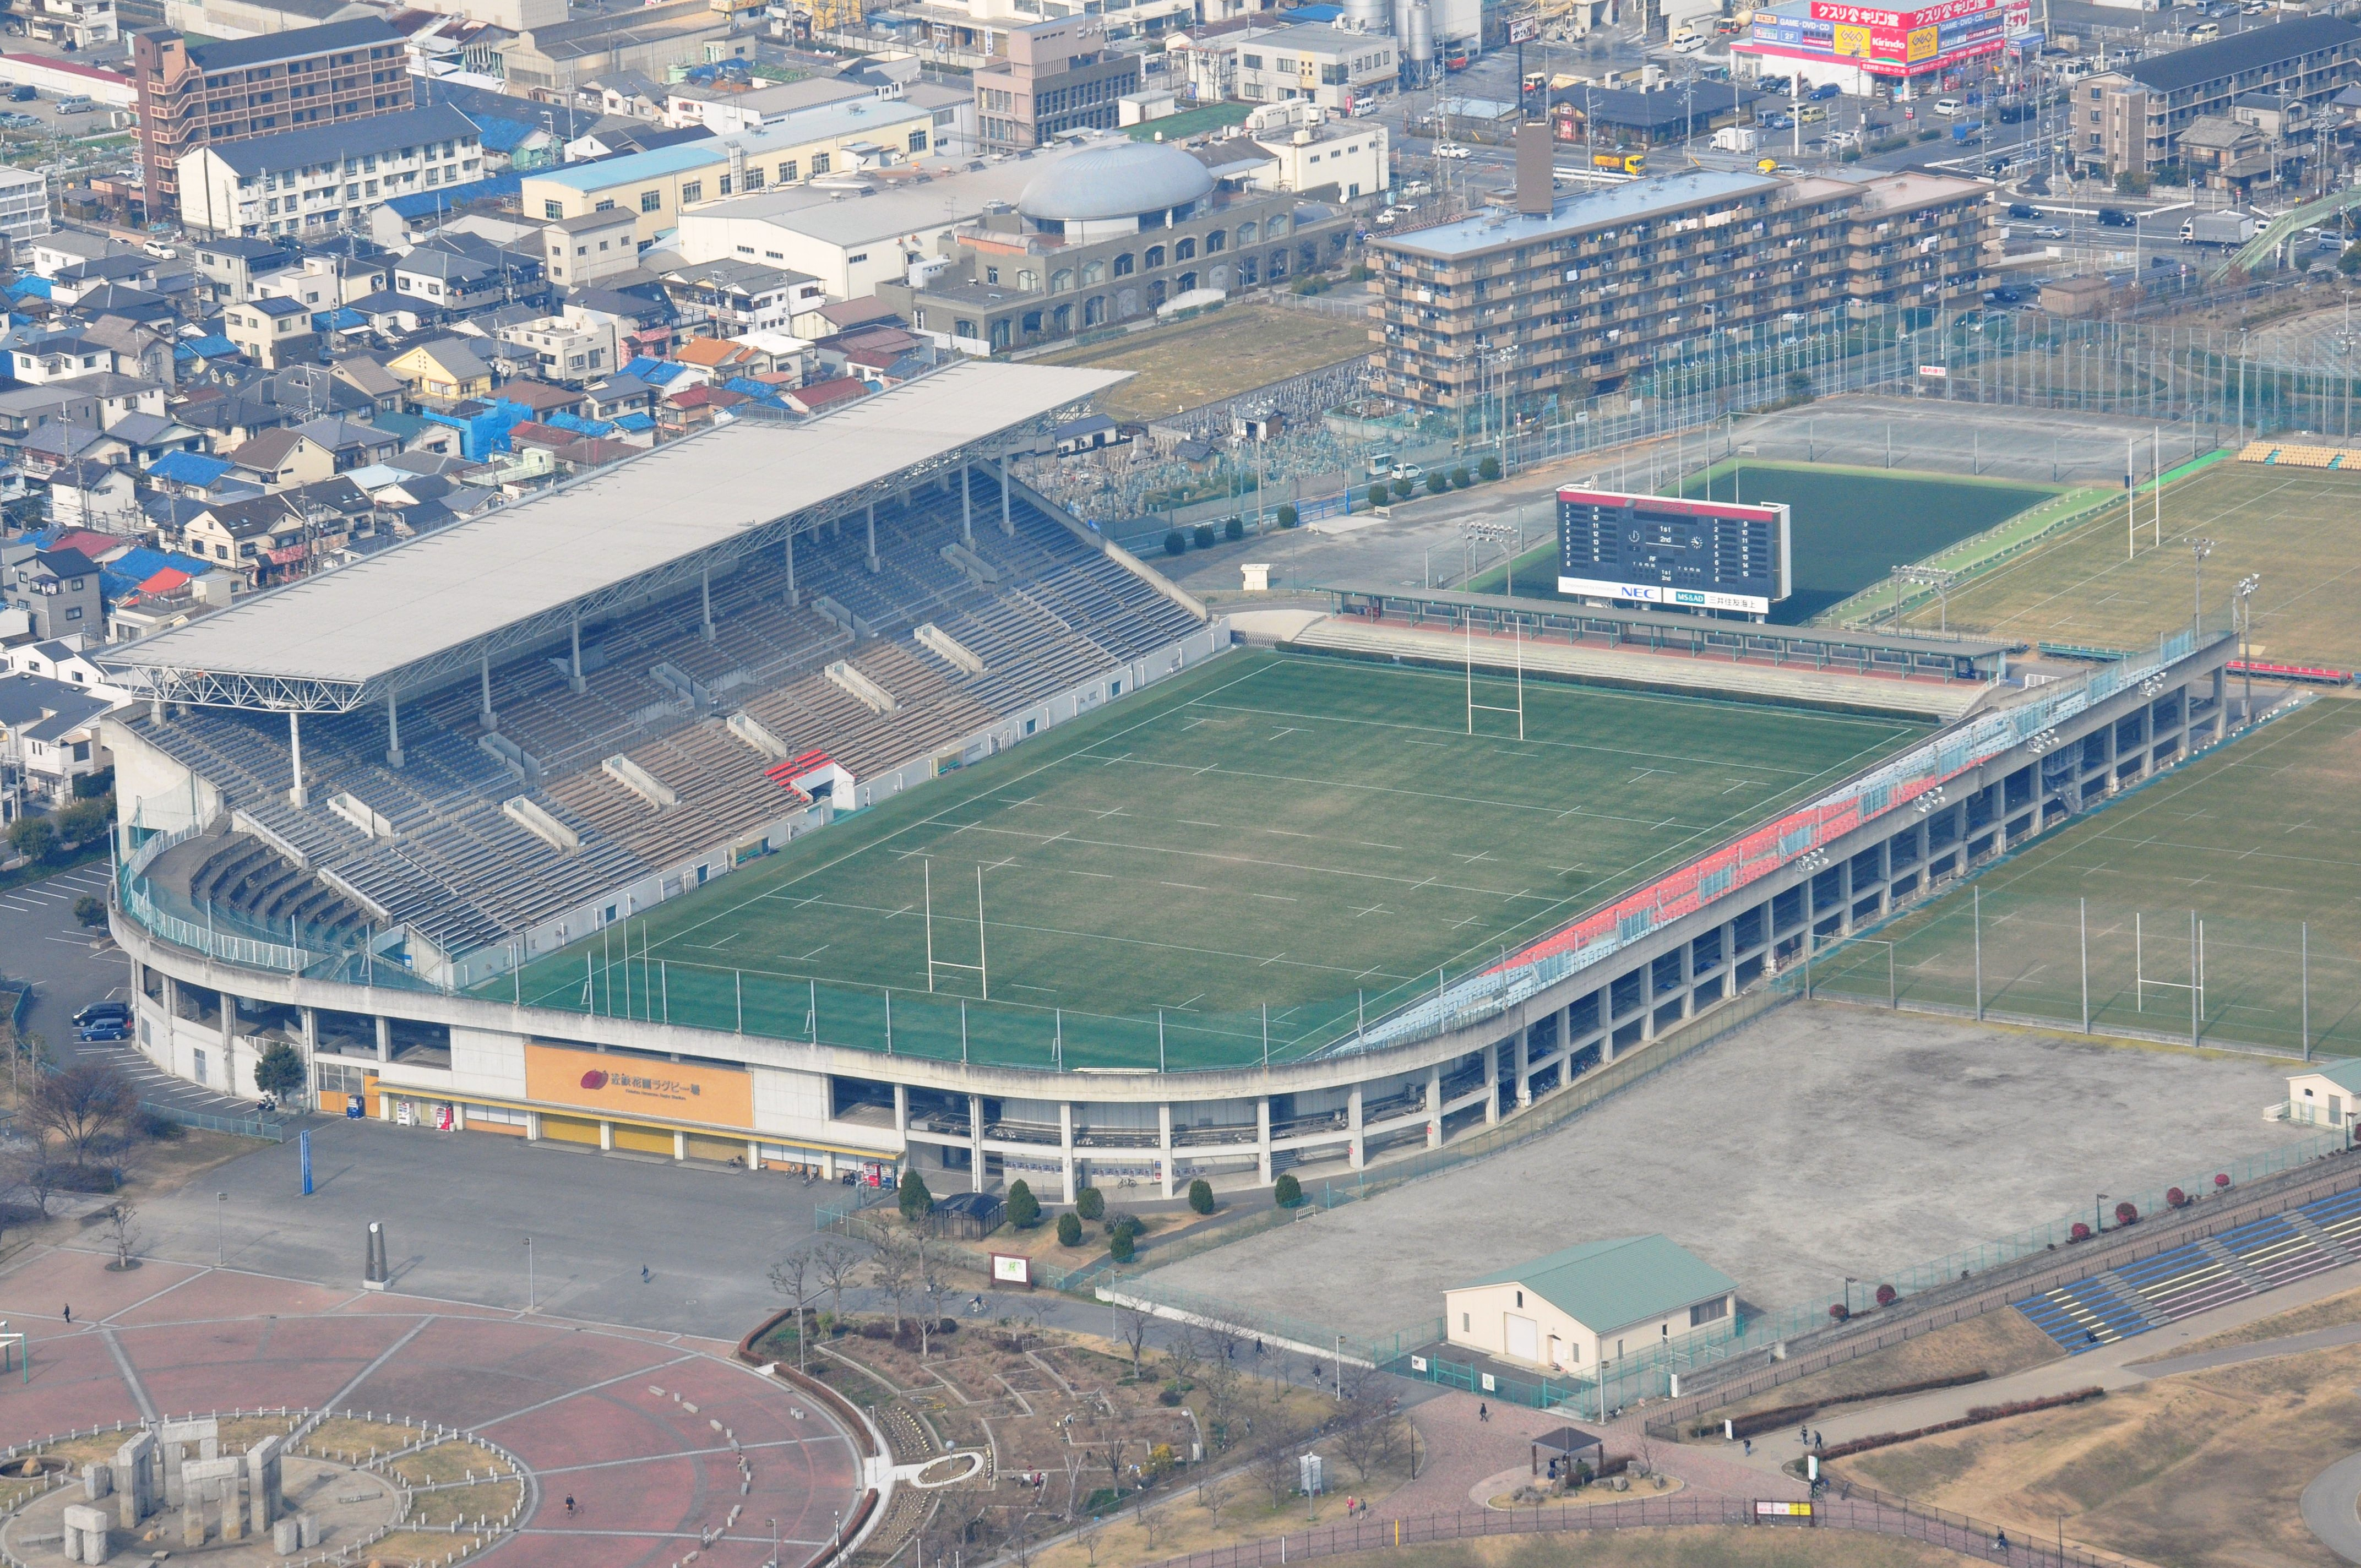 Hanazono Rugby Stadium Capacity: 30,000 Address: 1-1-1 Matsubara Minami, Higashi Osaka-shi, Osaka Pref. Notes: known as the venue of annual national rugby high school tournament